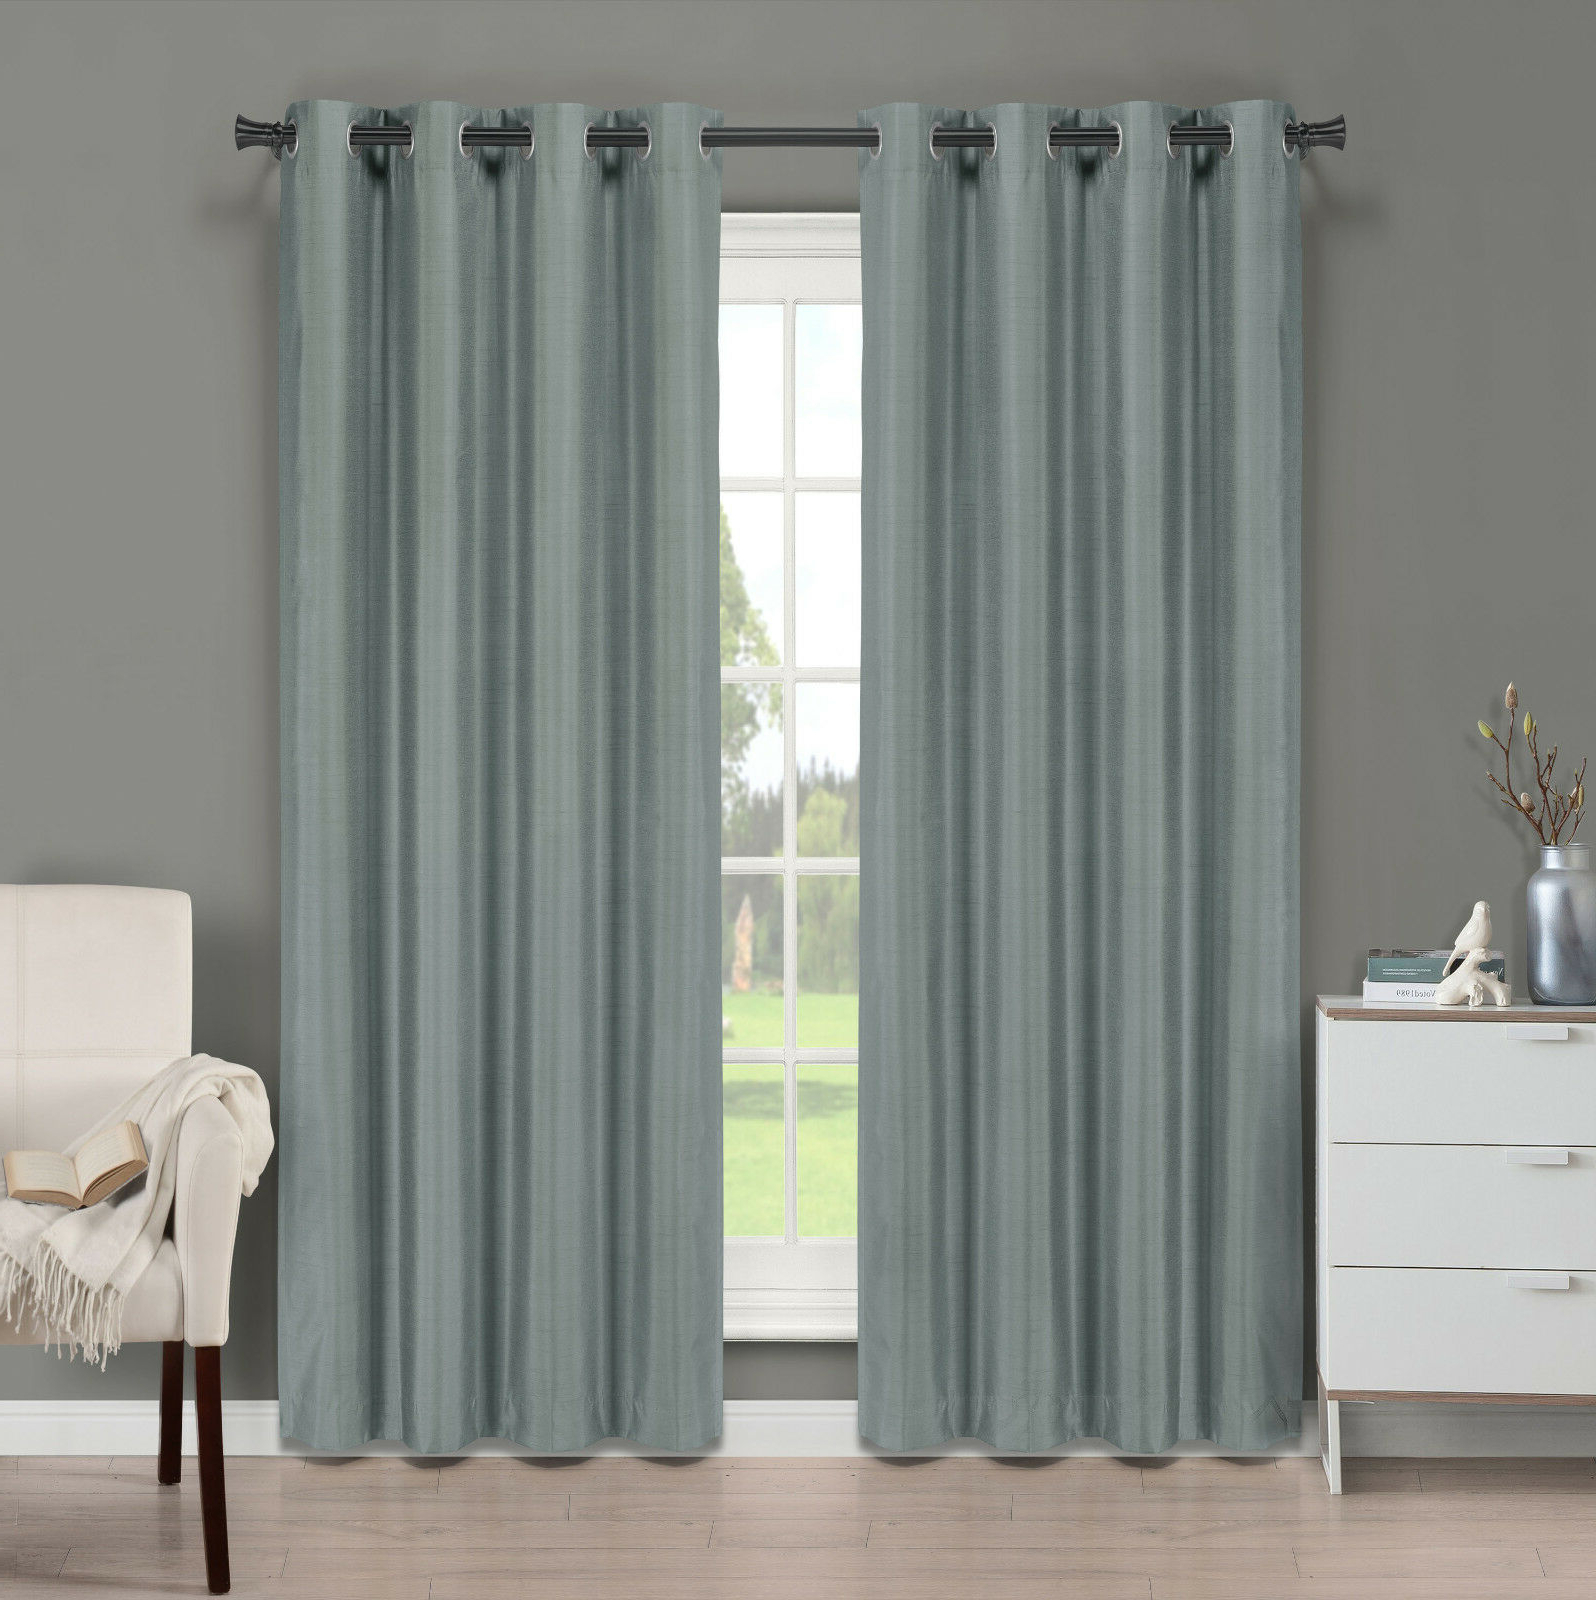 Best And Newest Softline Trenton Grommet Top Curtain Panels Regarding Brielle Fortune Faux Dupioni Silk Lined Curtain Panel (View 4 of 20)